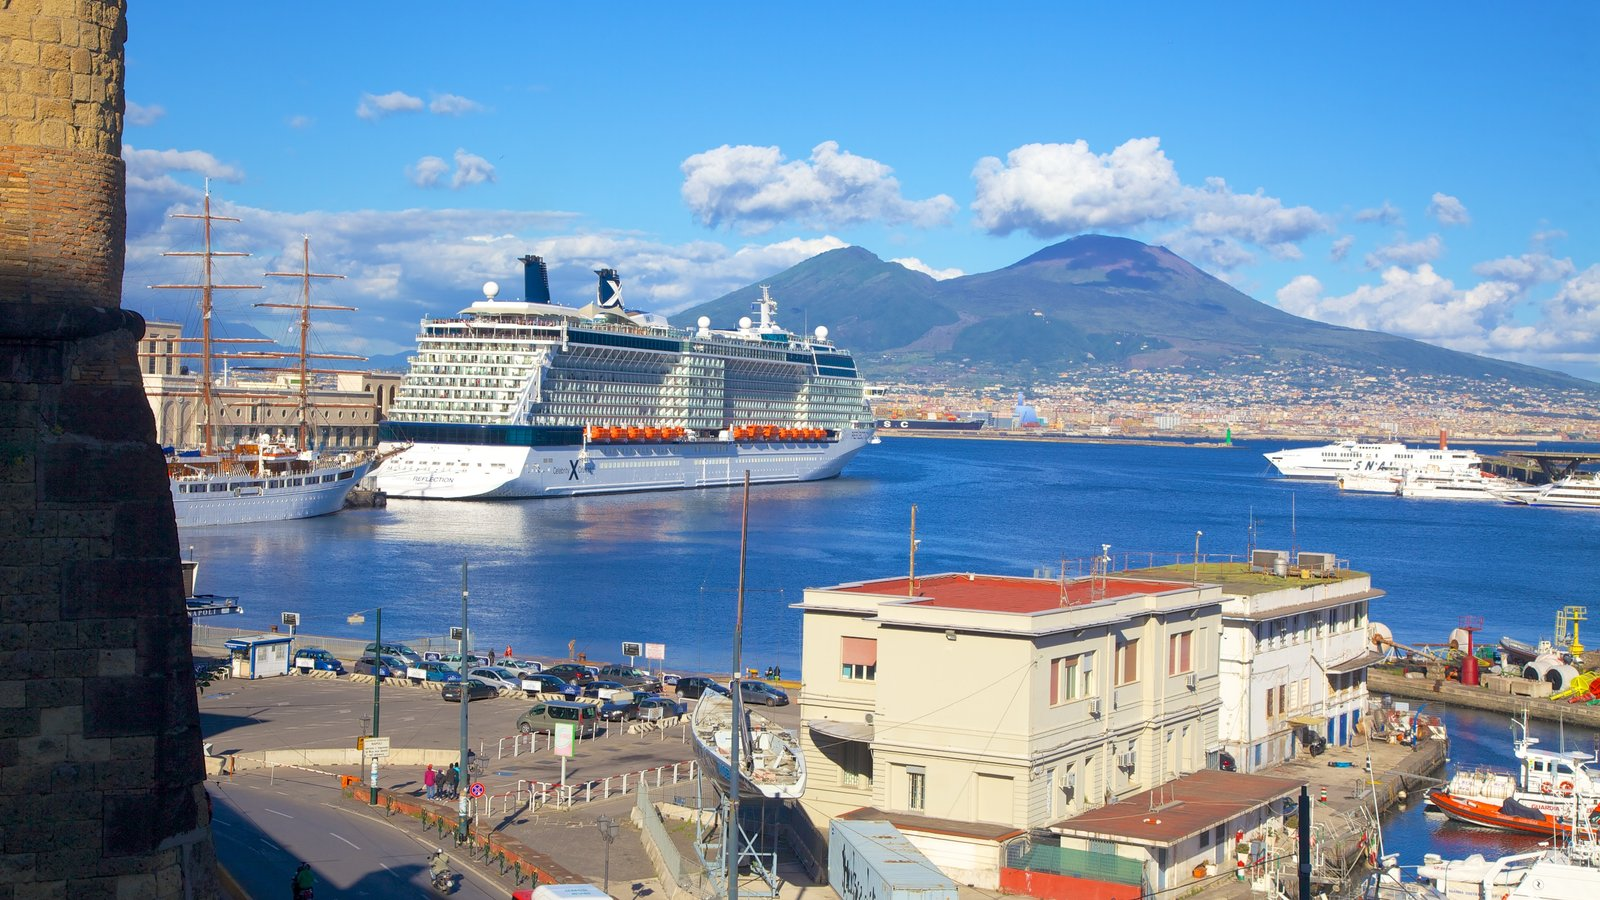 Mount Vesuvius - Pompei which includes a city, mountains and a marina